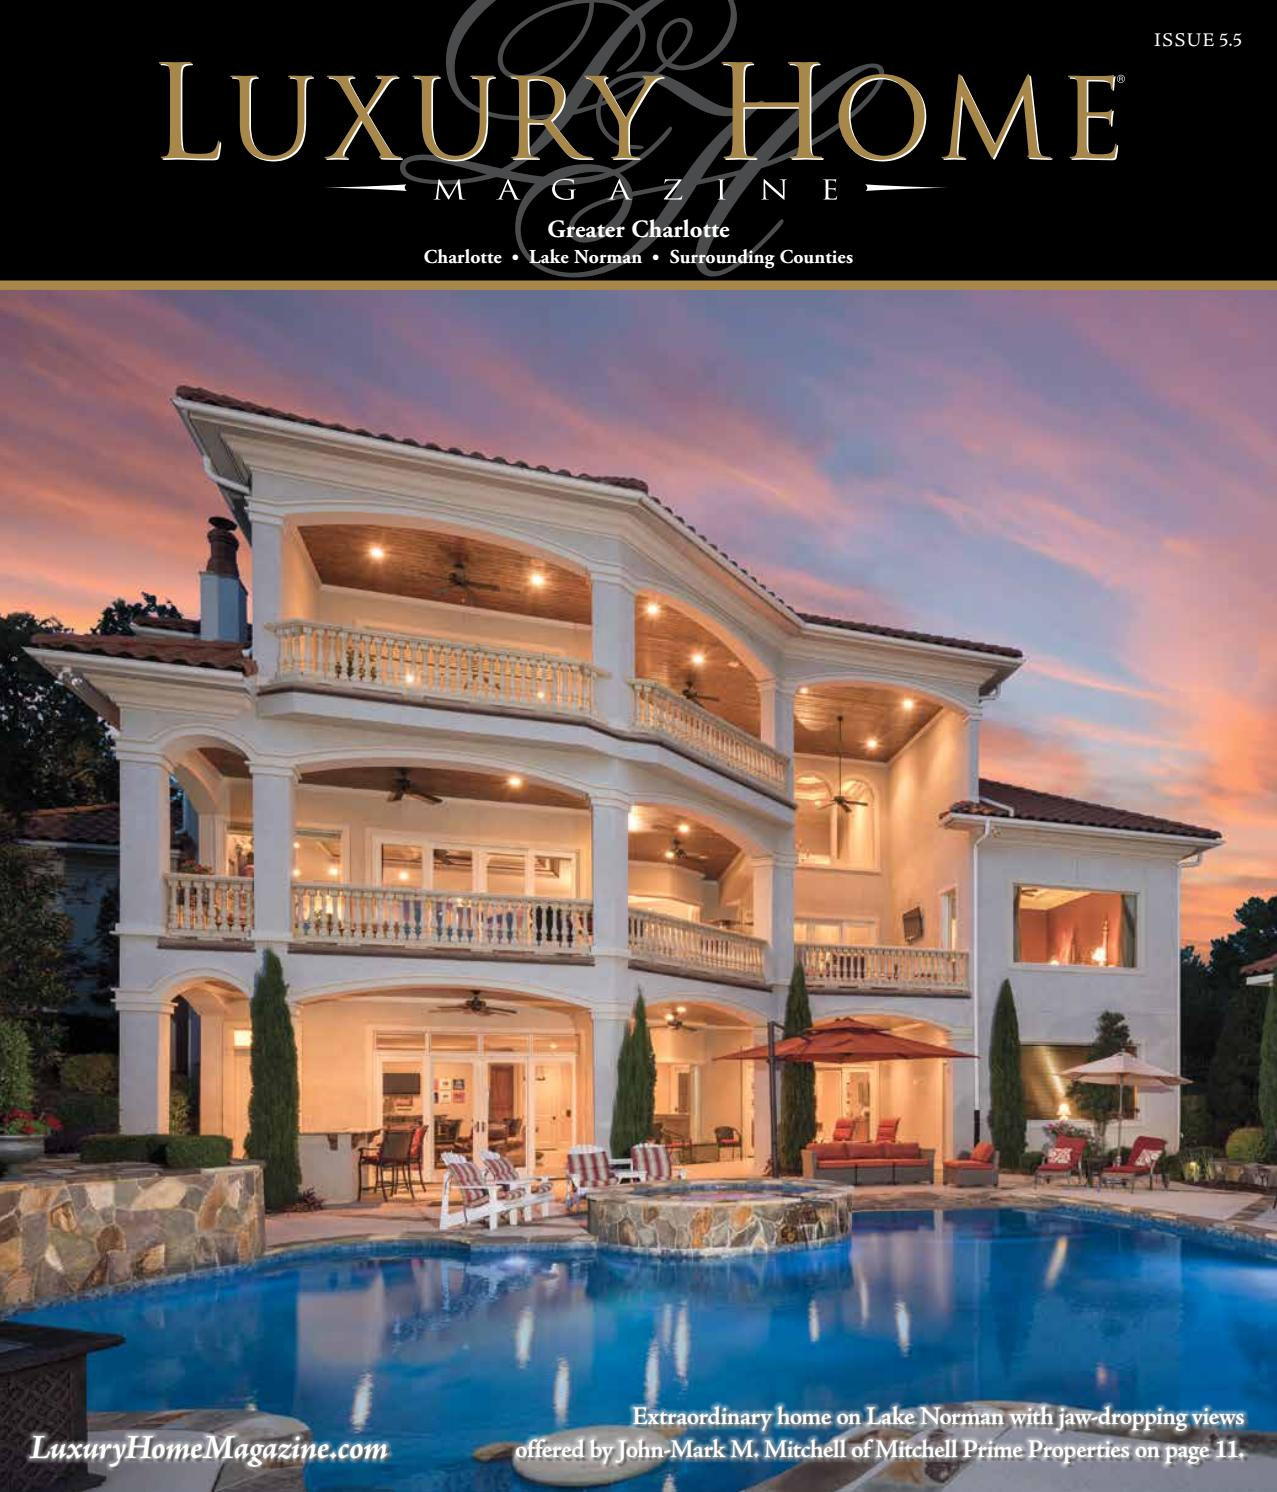 Lake Norman Luxury Homes: Luxury Home Magazine Greater Charlotte Issue 5.5 By Luxury